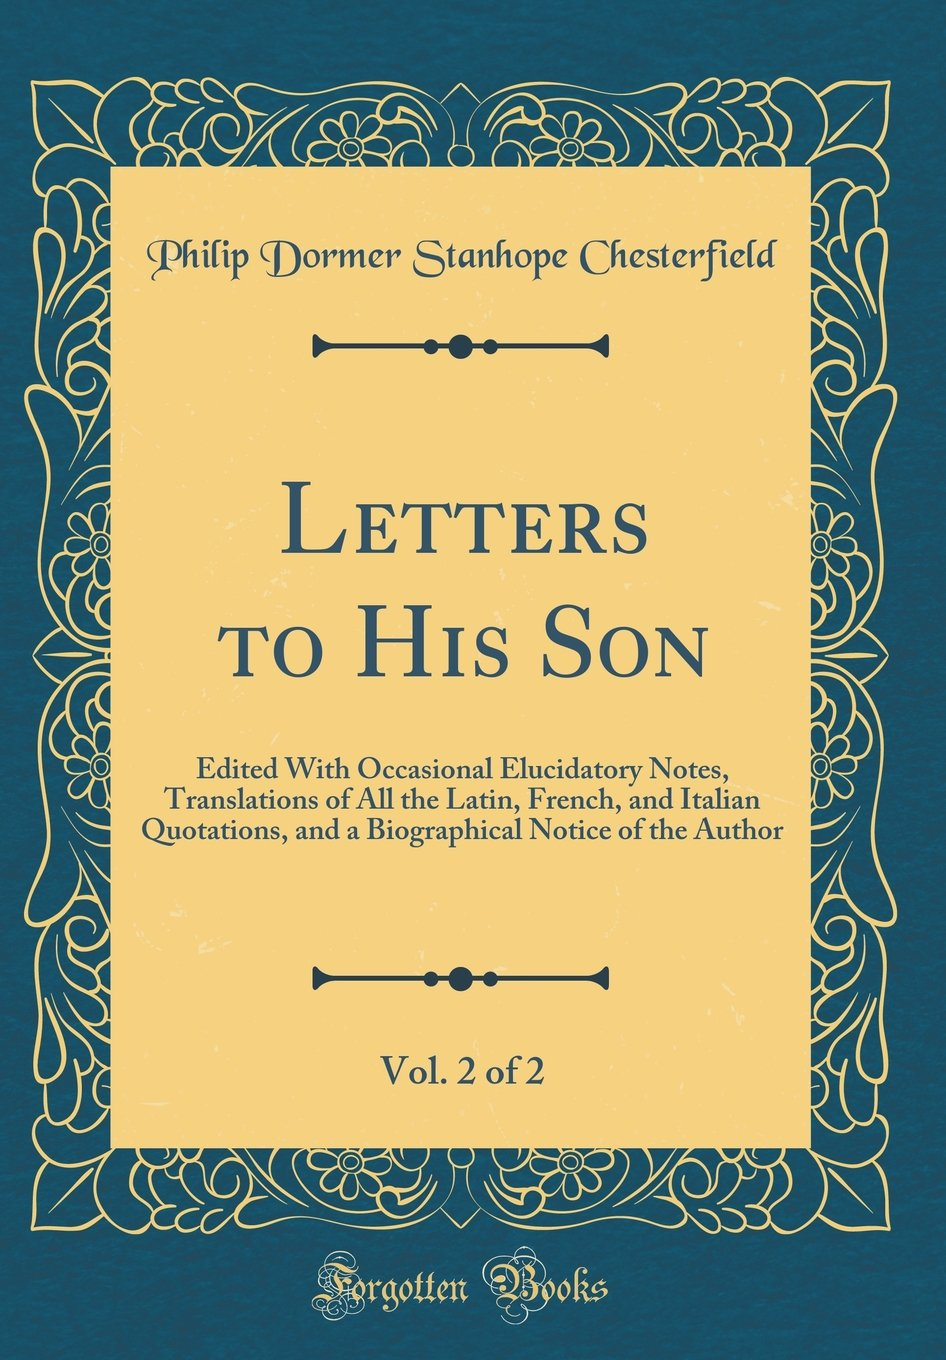 Download Letters to His Son, Vol. 2 of 2: Edited With Occasional Elucidatory Notes, Translations of All the Latin, French, and Italian Quotations, and a Biographical Notice of the Author (Classic Reprint) pdf epub